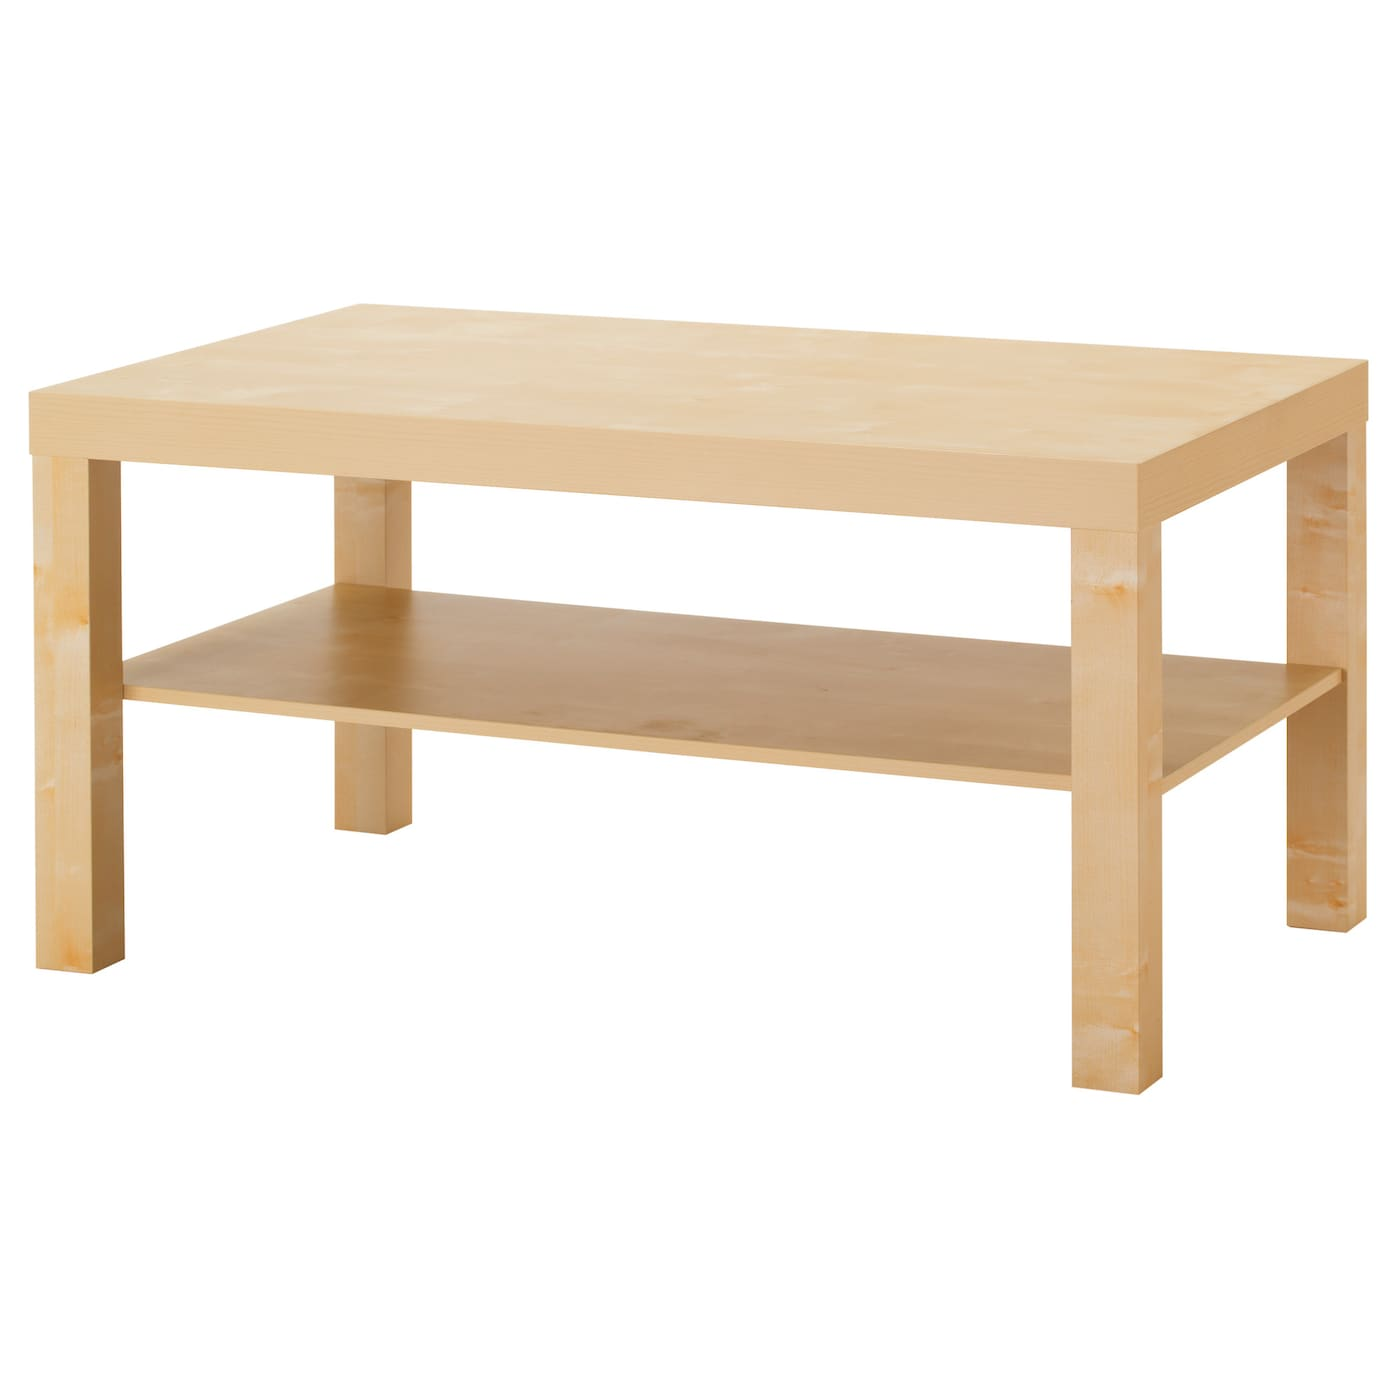 lack coffee table birch effect 90x55 cm ikea. Black Bedroom Furniture Sets. Home Design Ideas